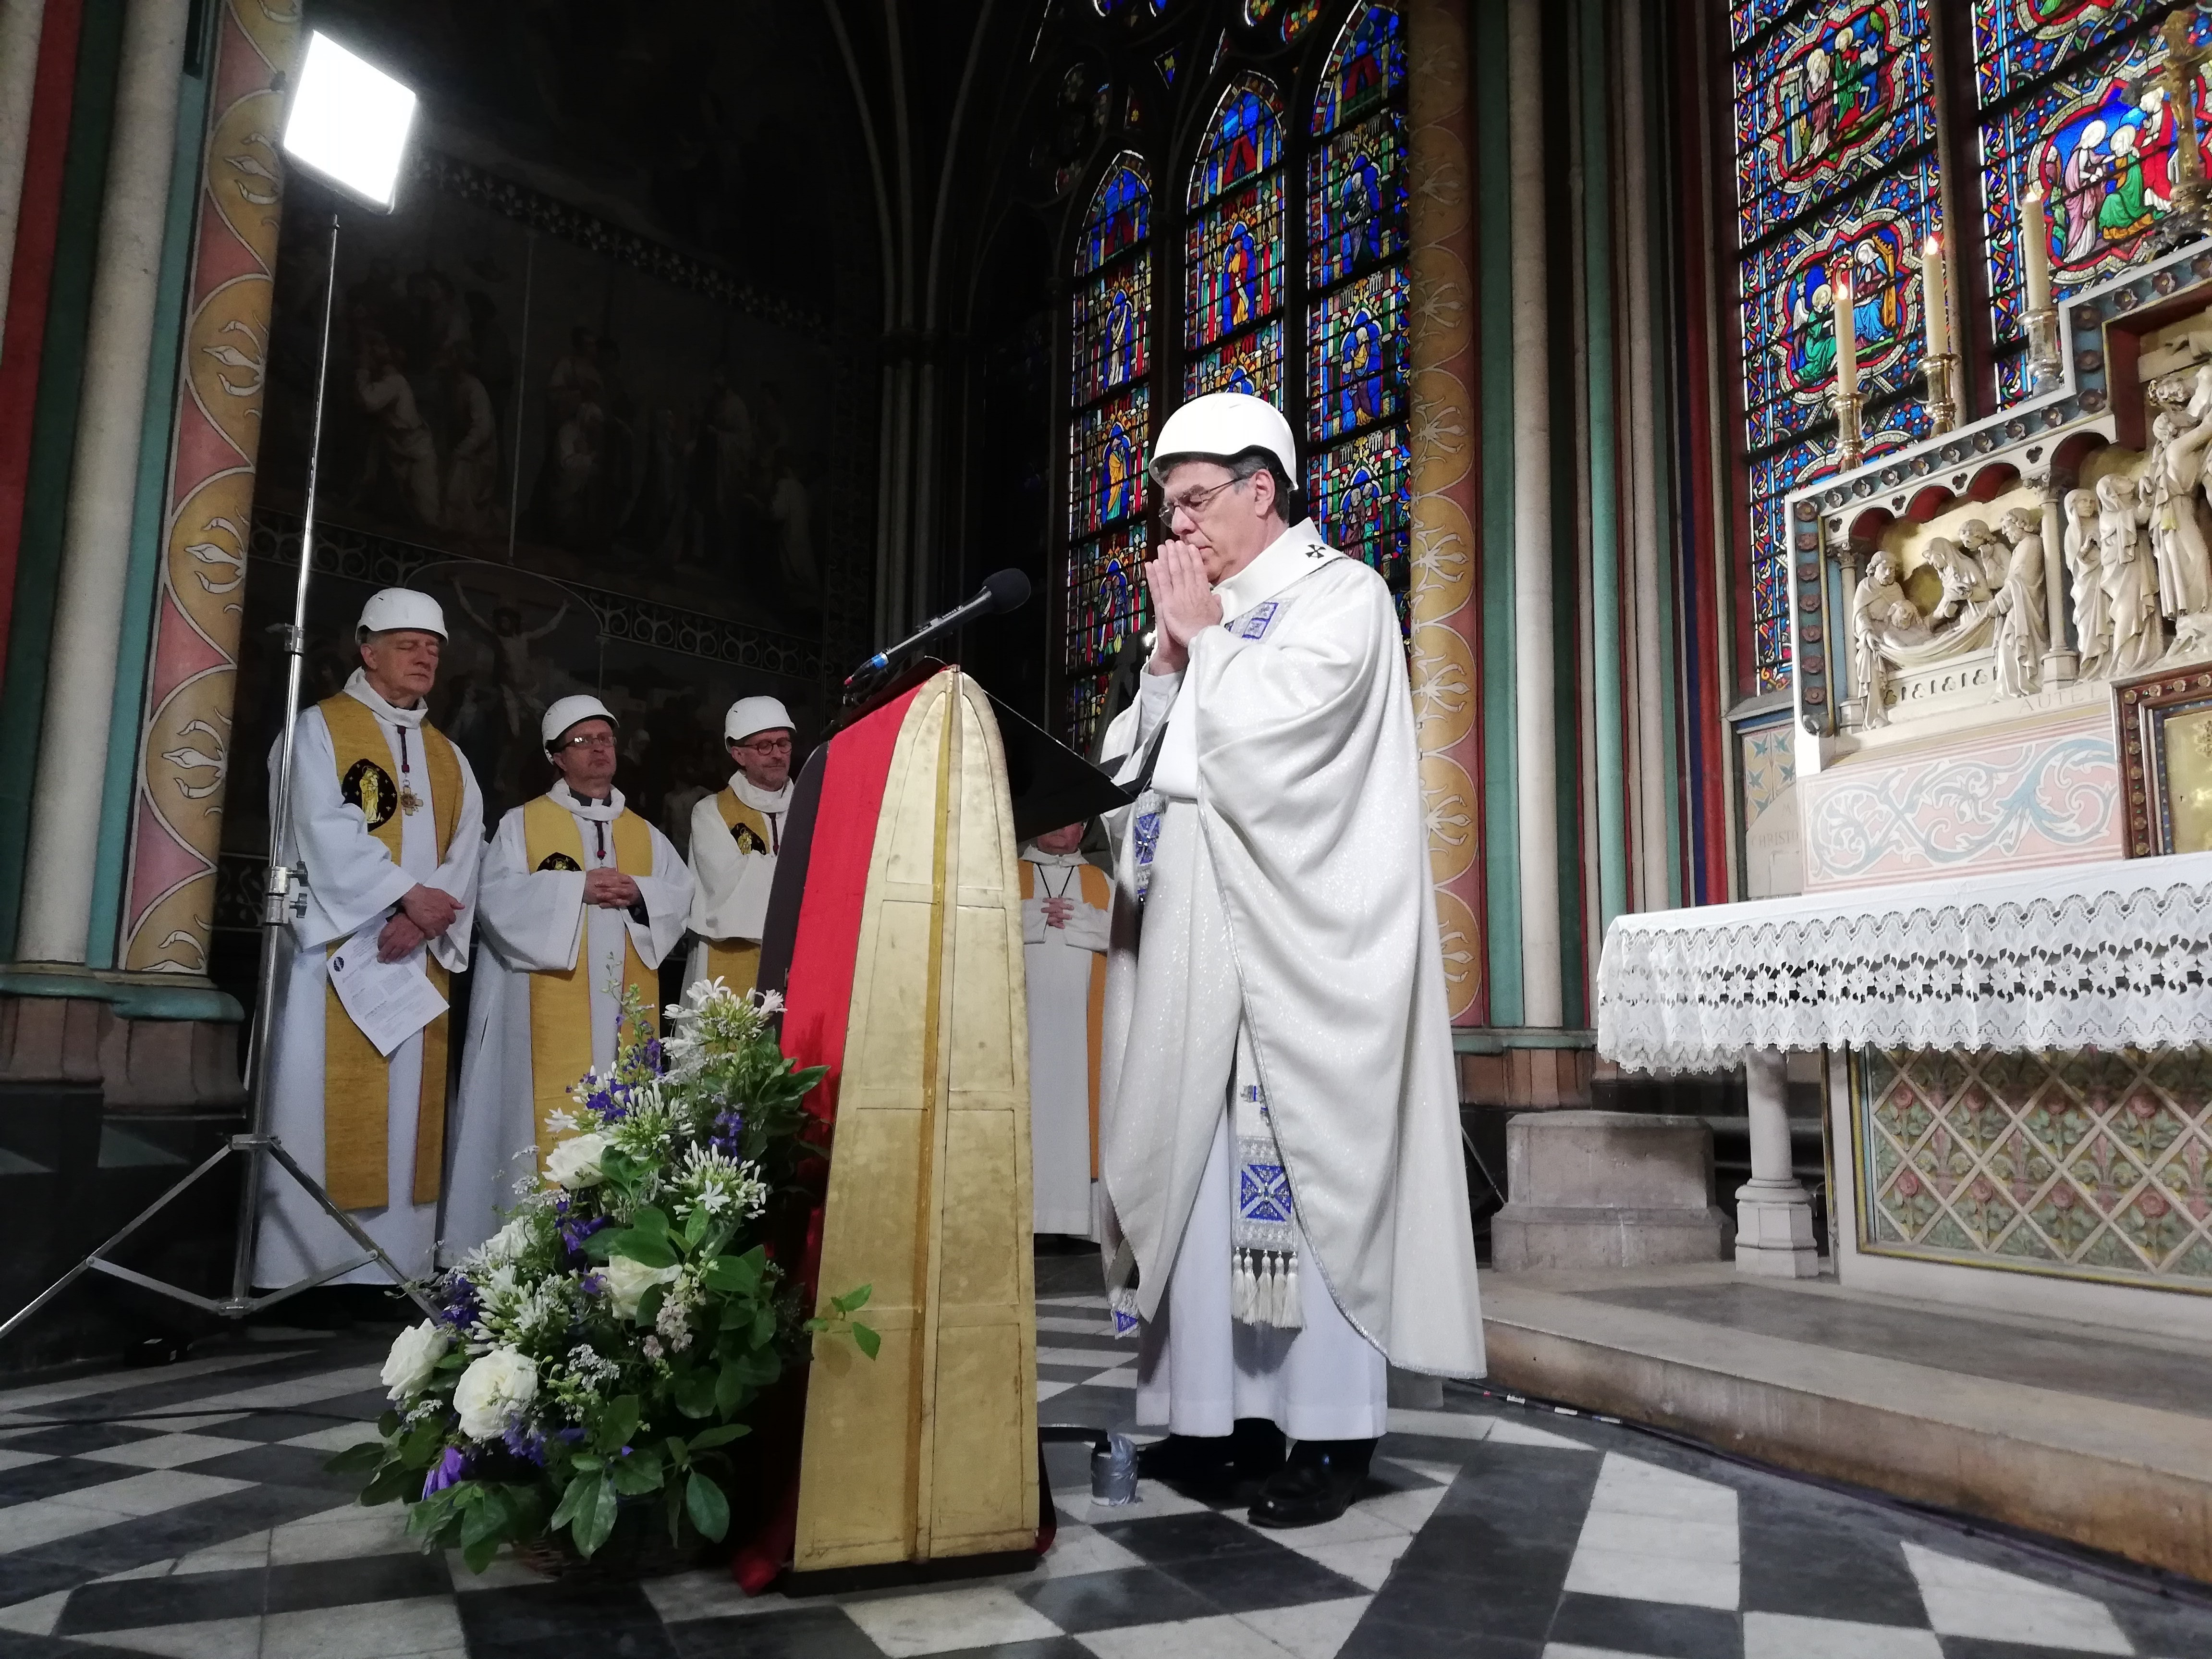 Notre Dame Holds 1st Mass Since Fire Devastated The Historic Paris Cathedral